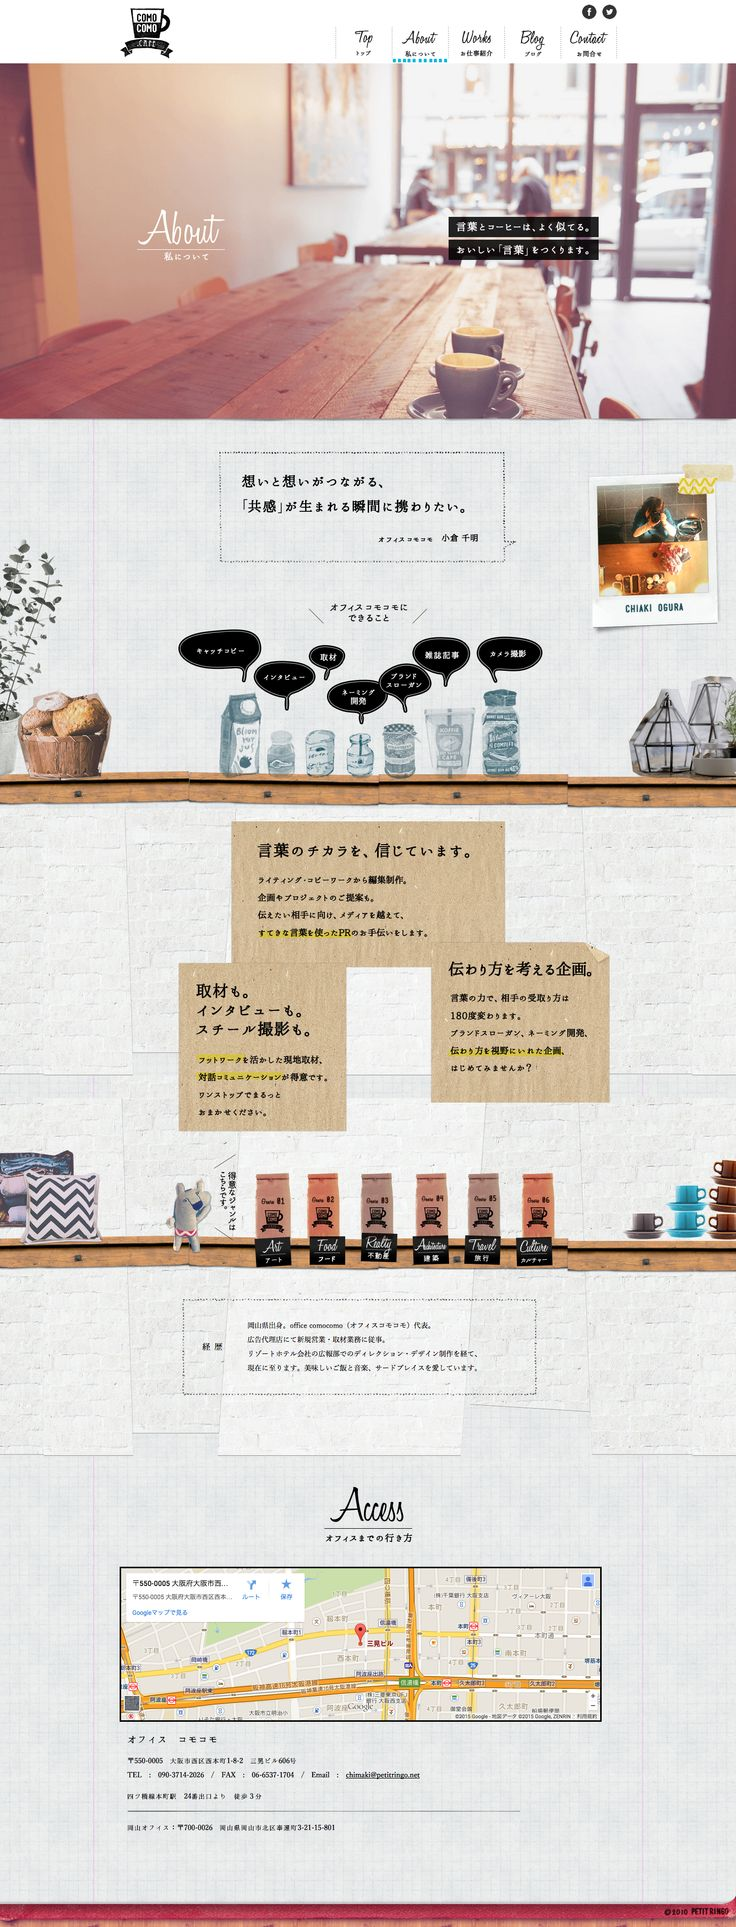 comocomo.cafe 〜架空のカフェでごゆっくり〜 Aboutページ